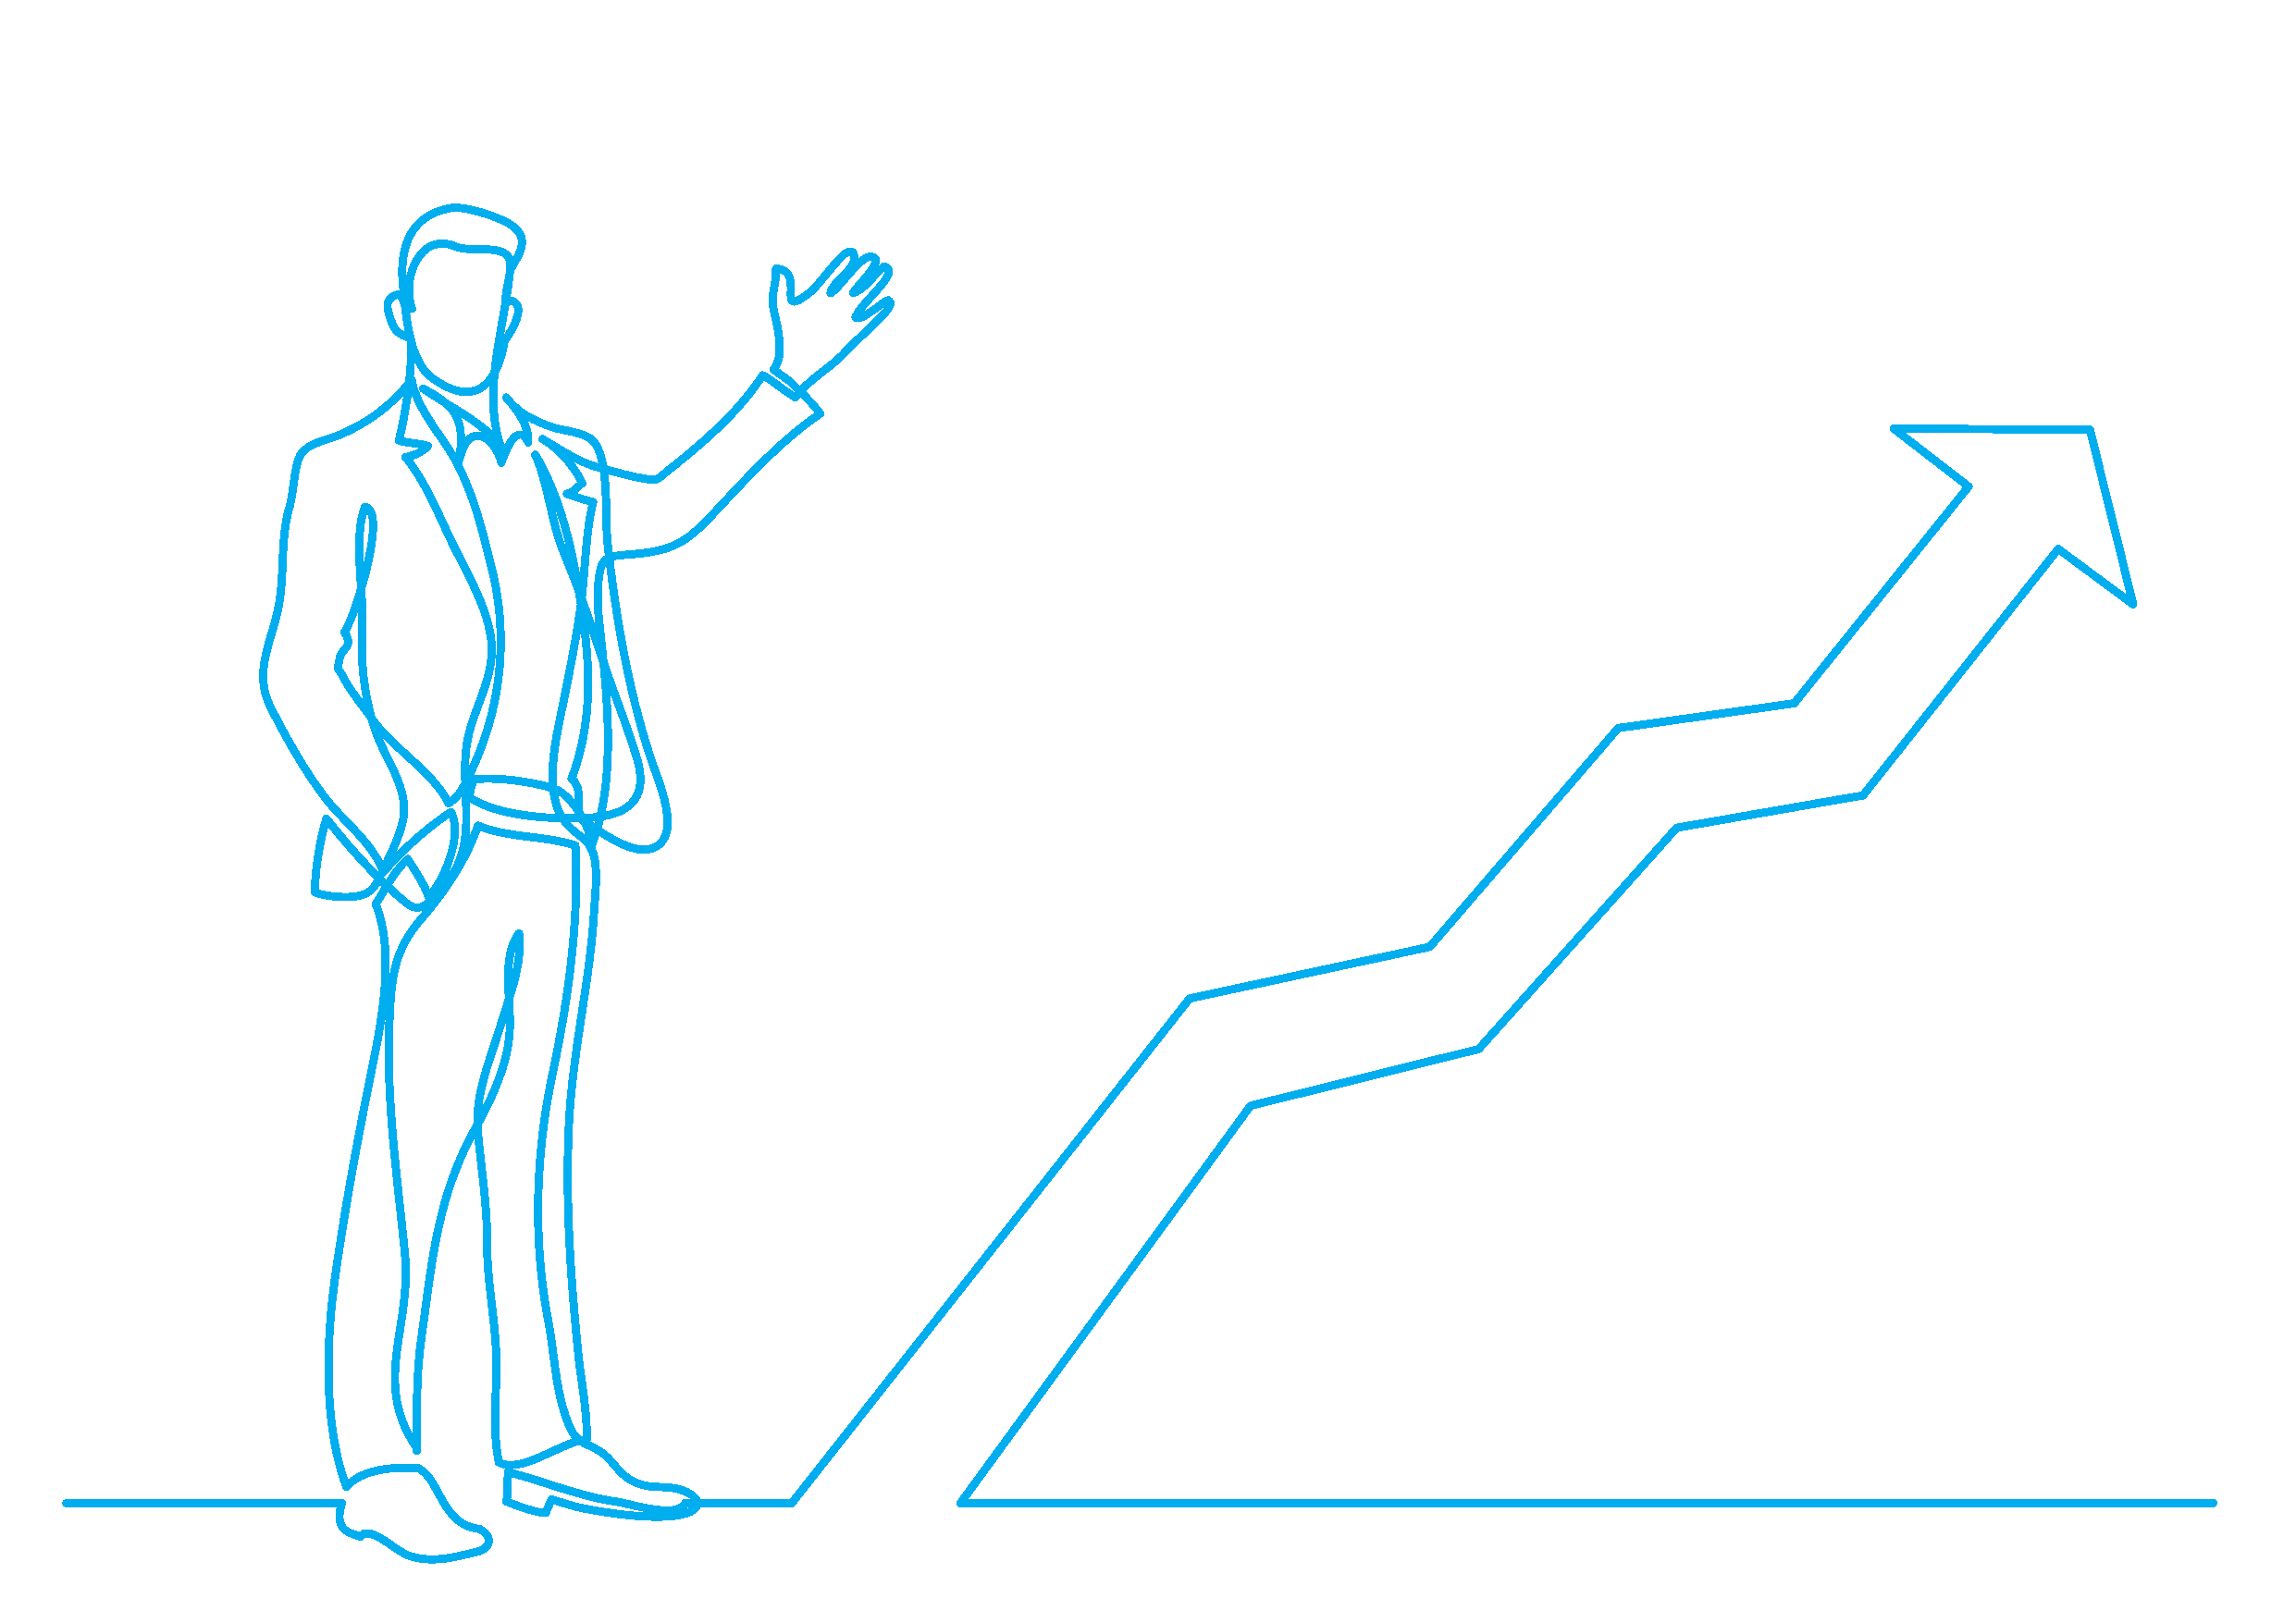 line drawing of man with graph